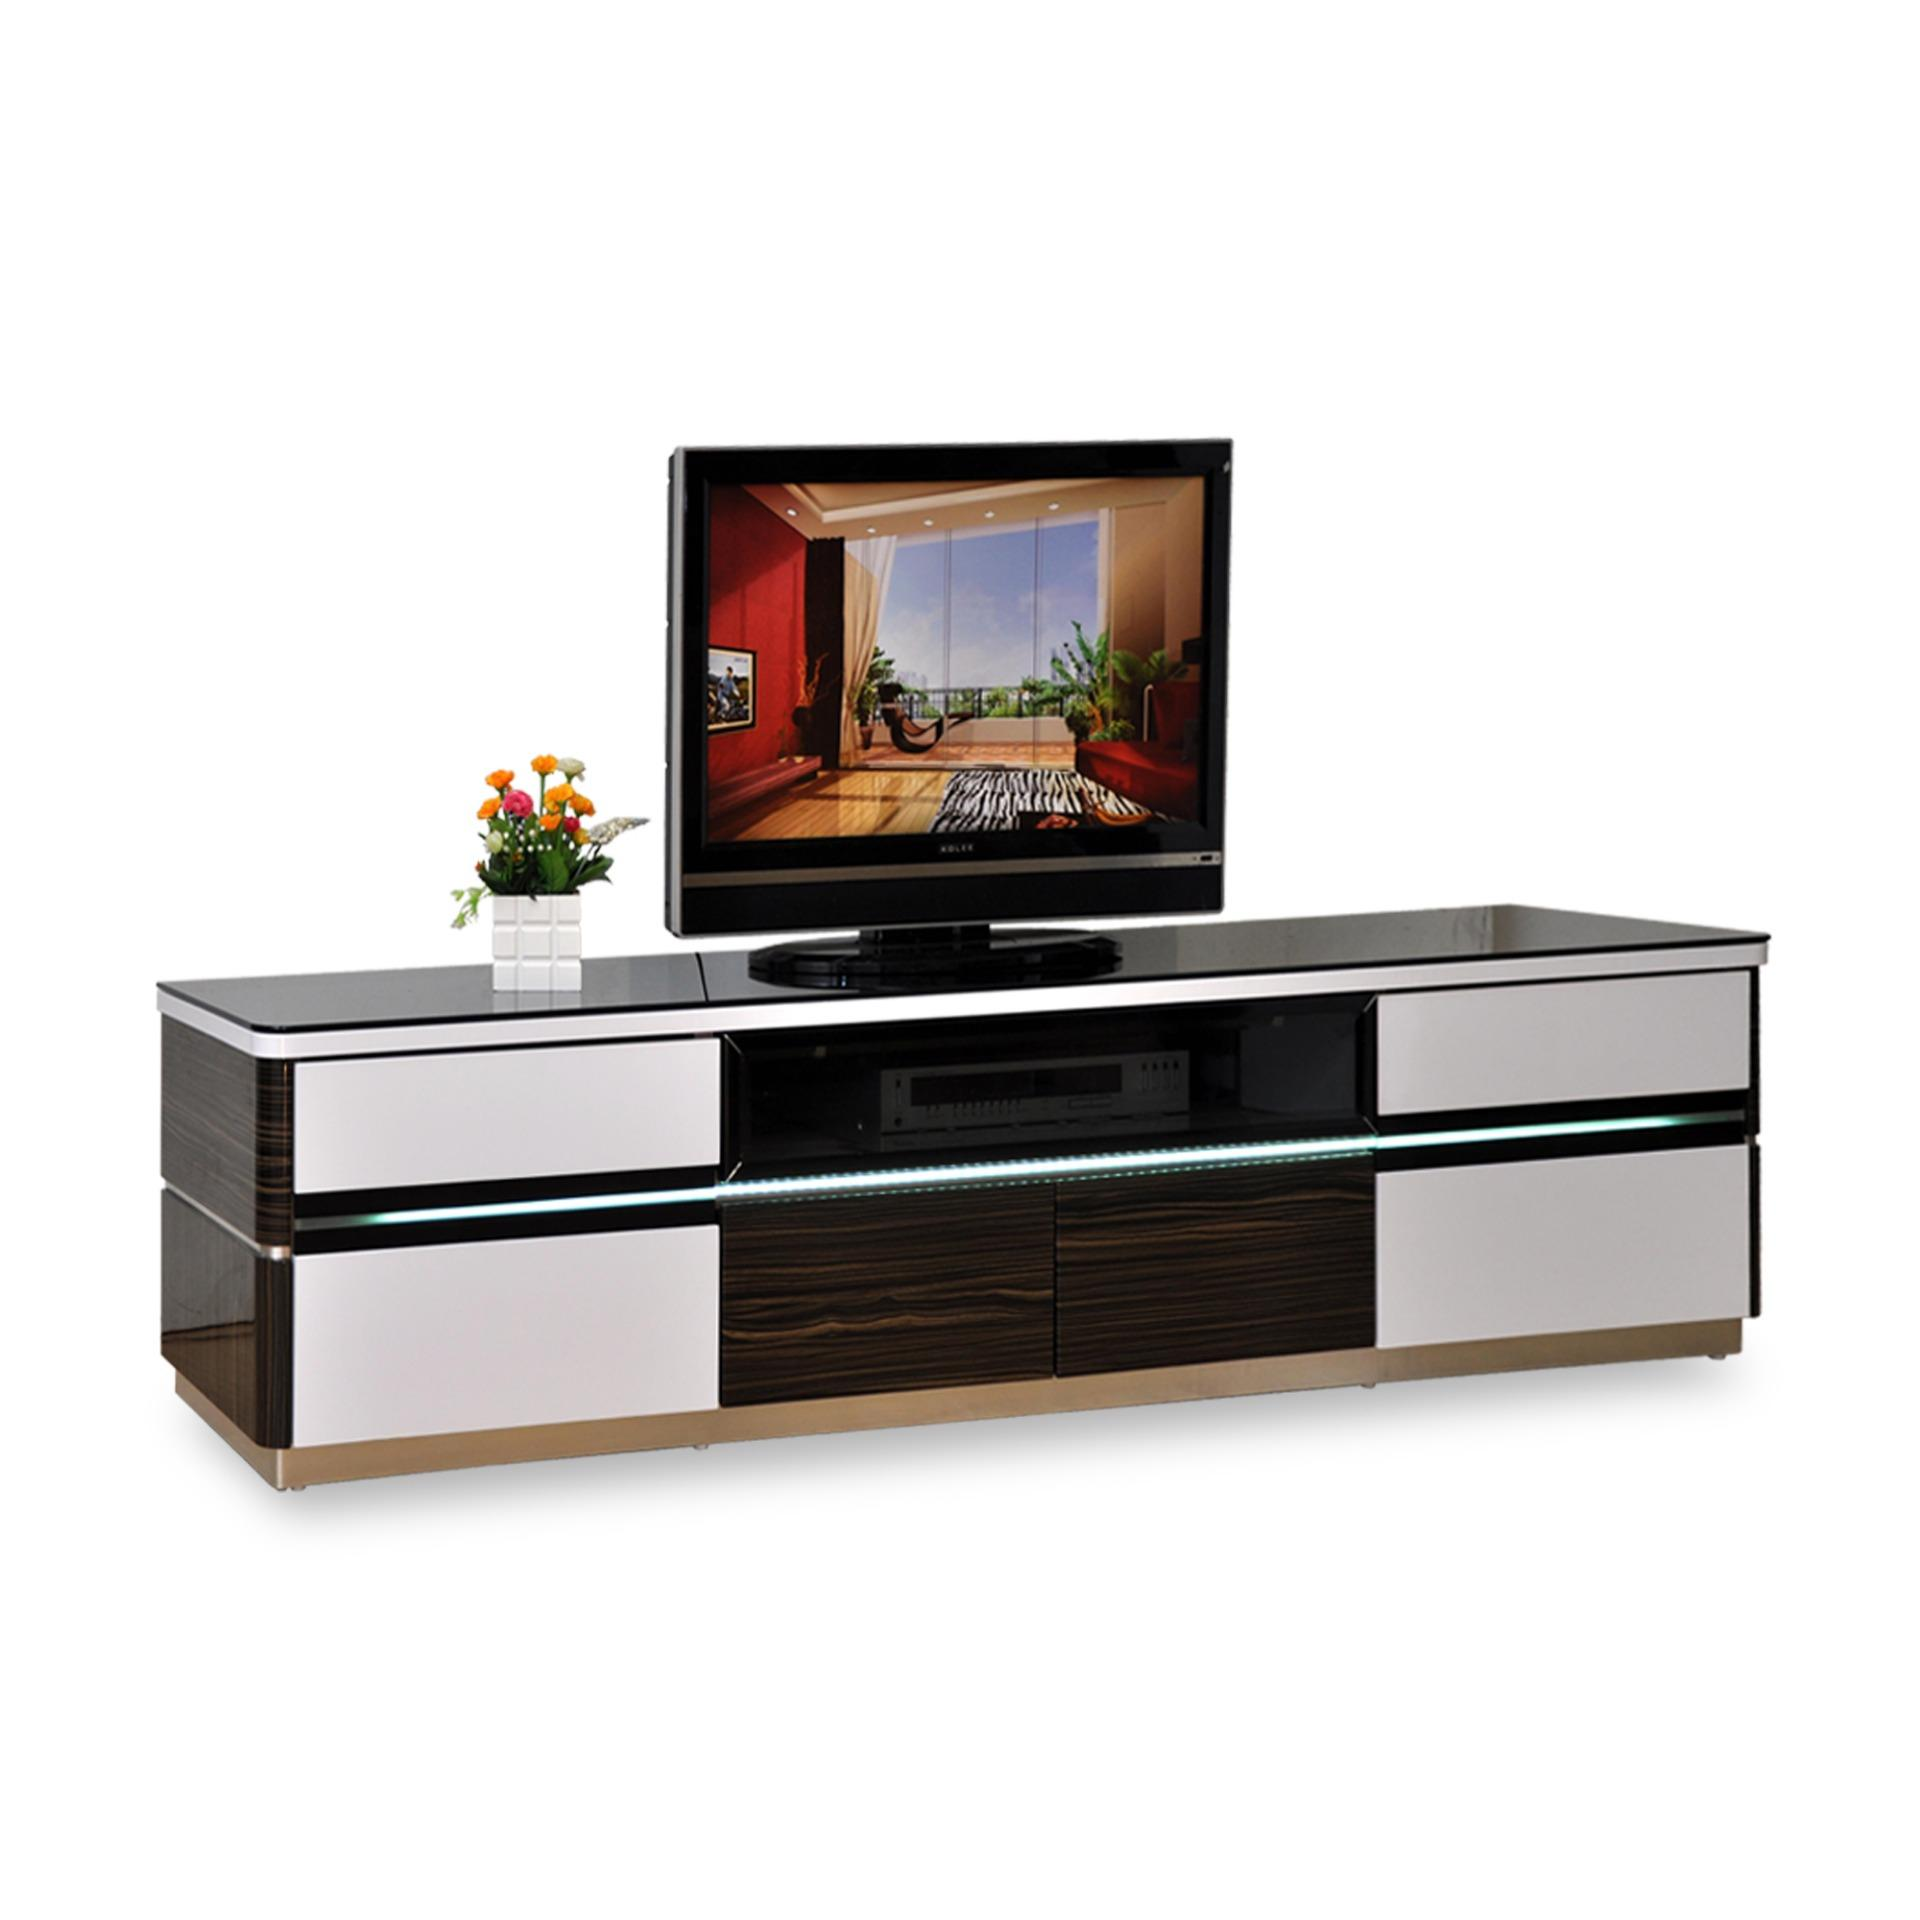 Emilia TV Console (FREE DELIVERY)(FREE ASSEMBLY)